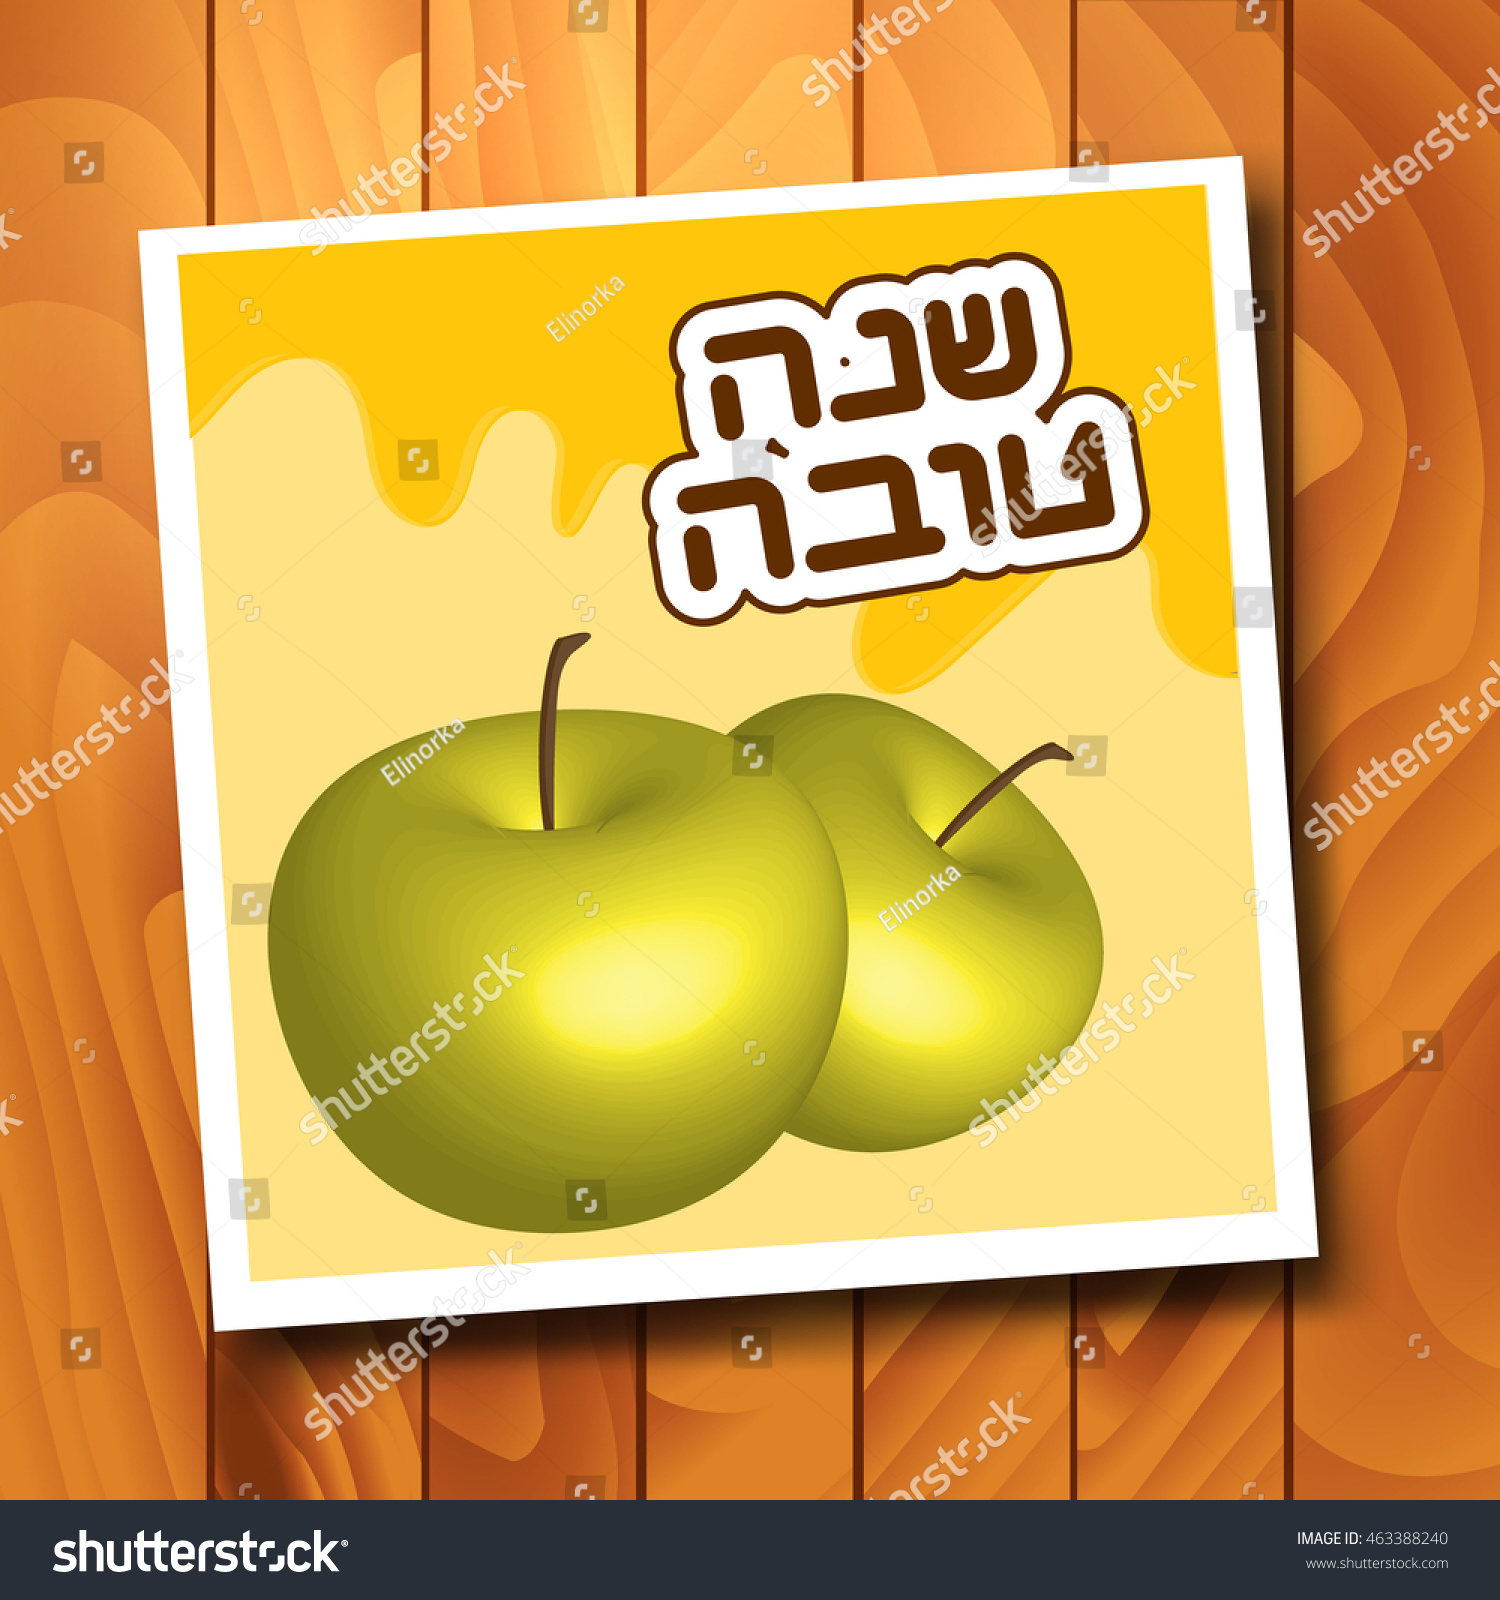 Rosh hashanah jewish new year greeting stock vector 463388240 rosh hashanah jewish new year greeting card with apples hebrew text happy kristyandbryce Image collections